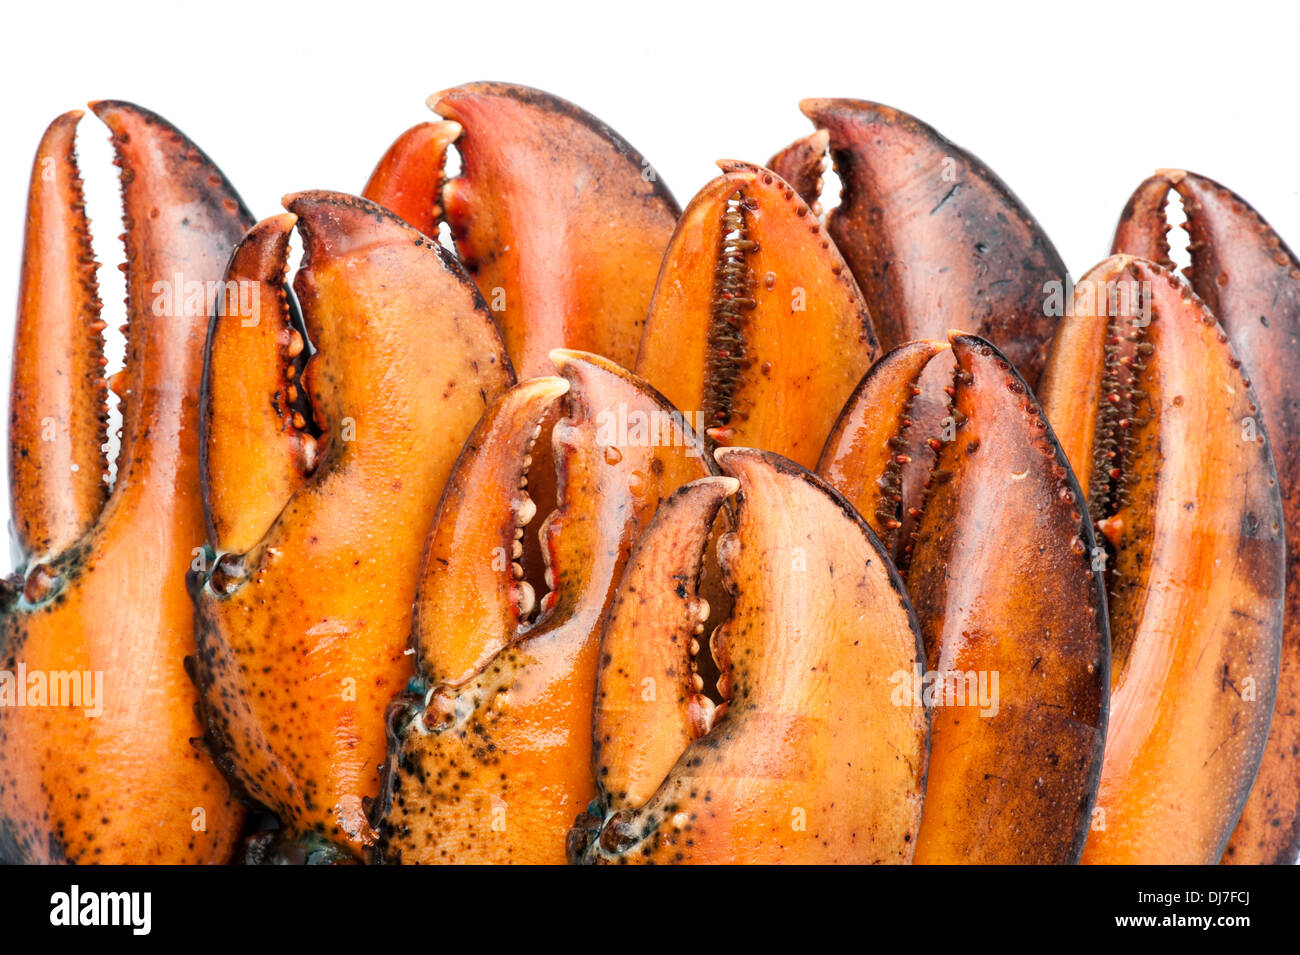 Lobster claws on white background - Stock Image